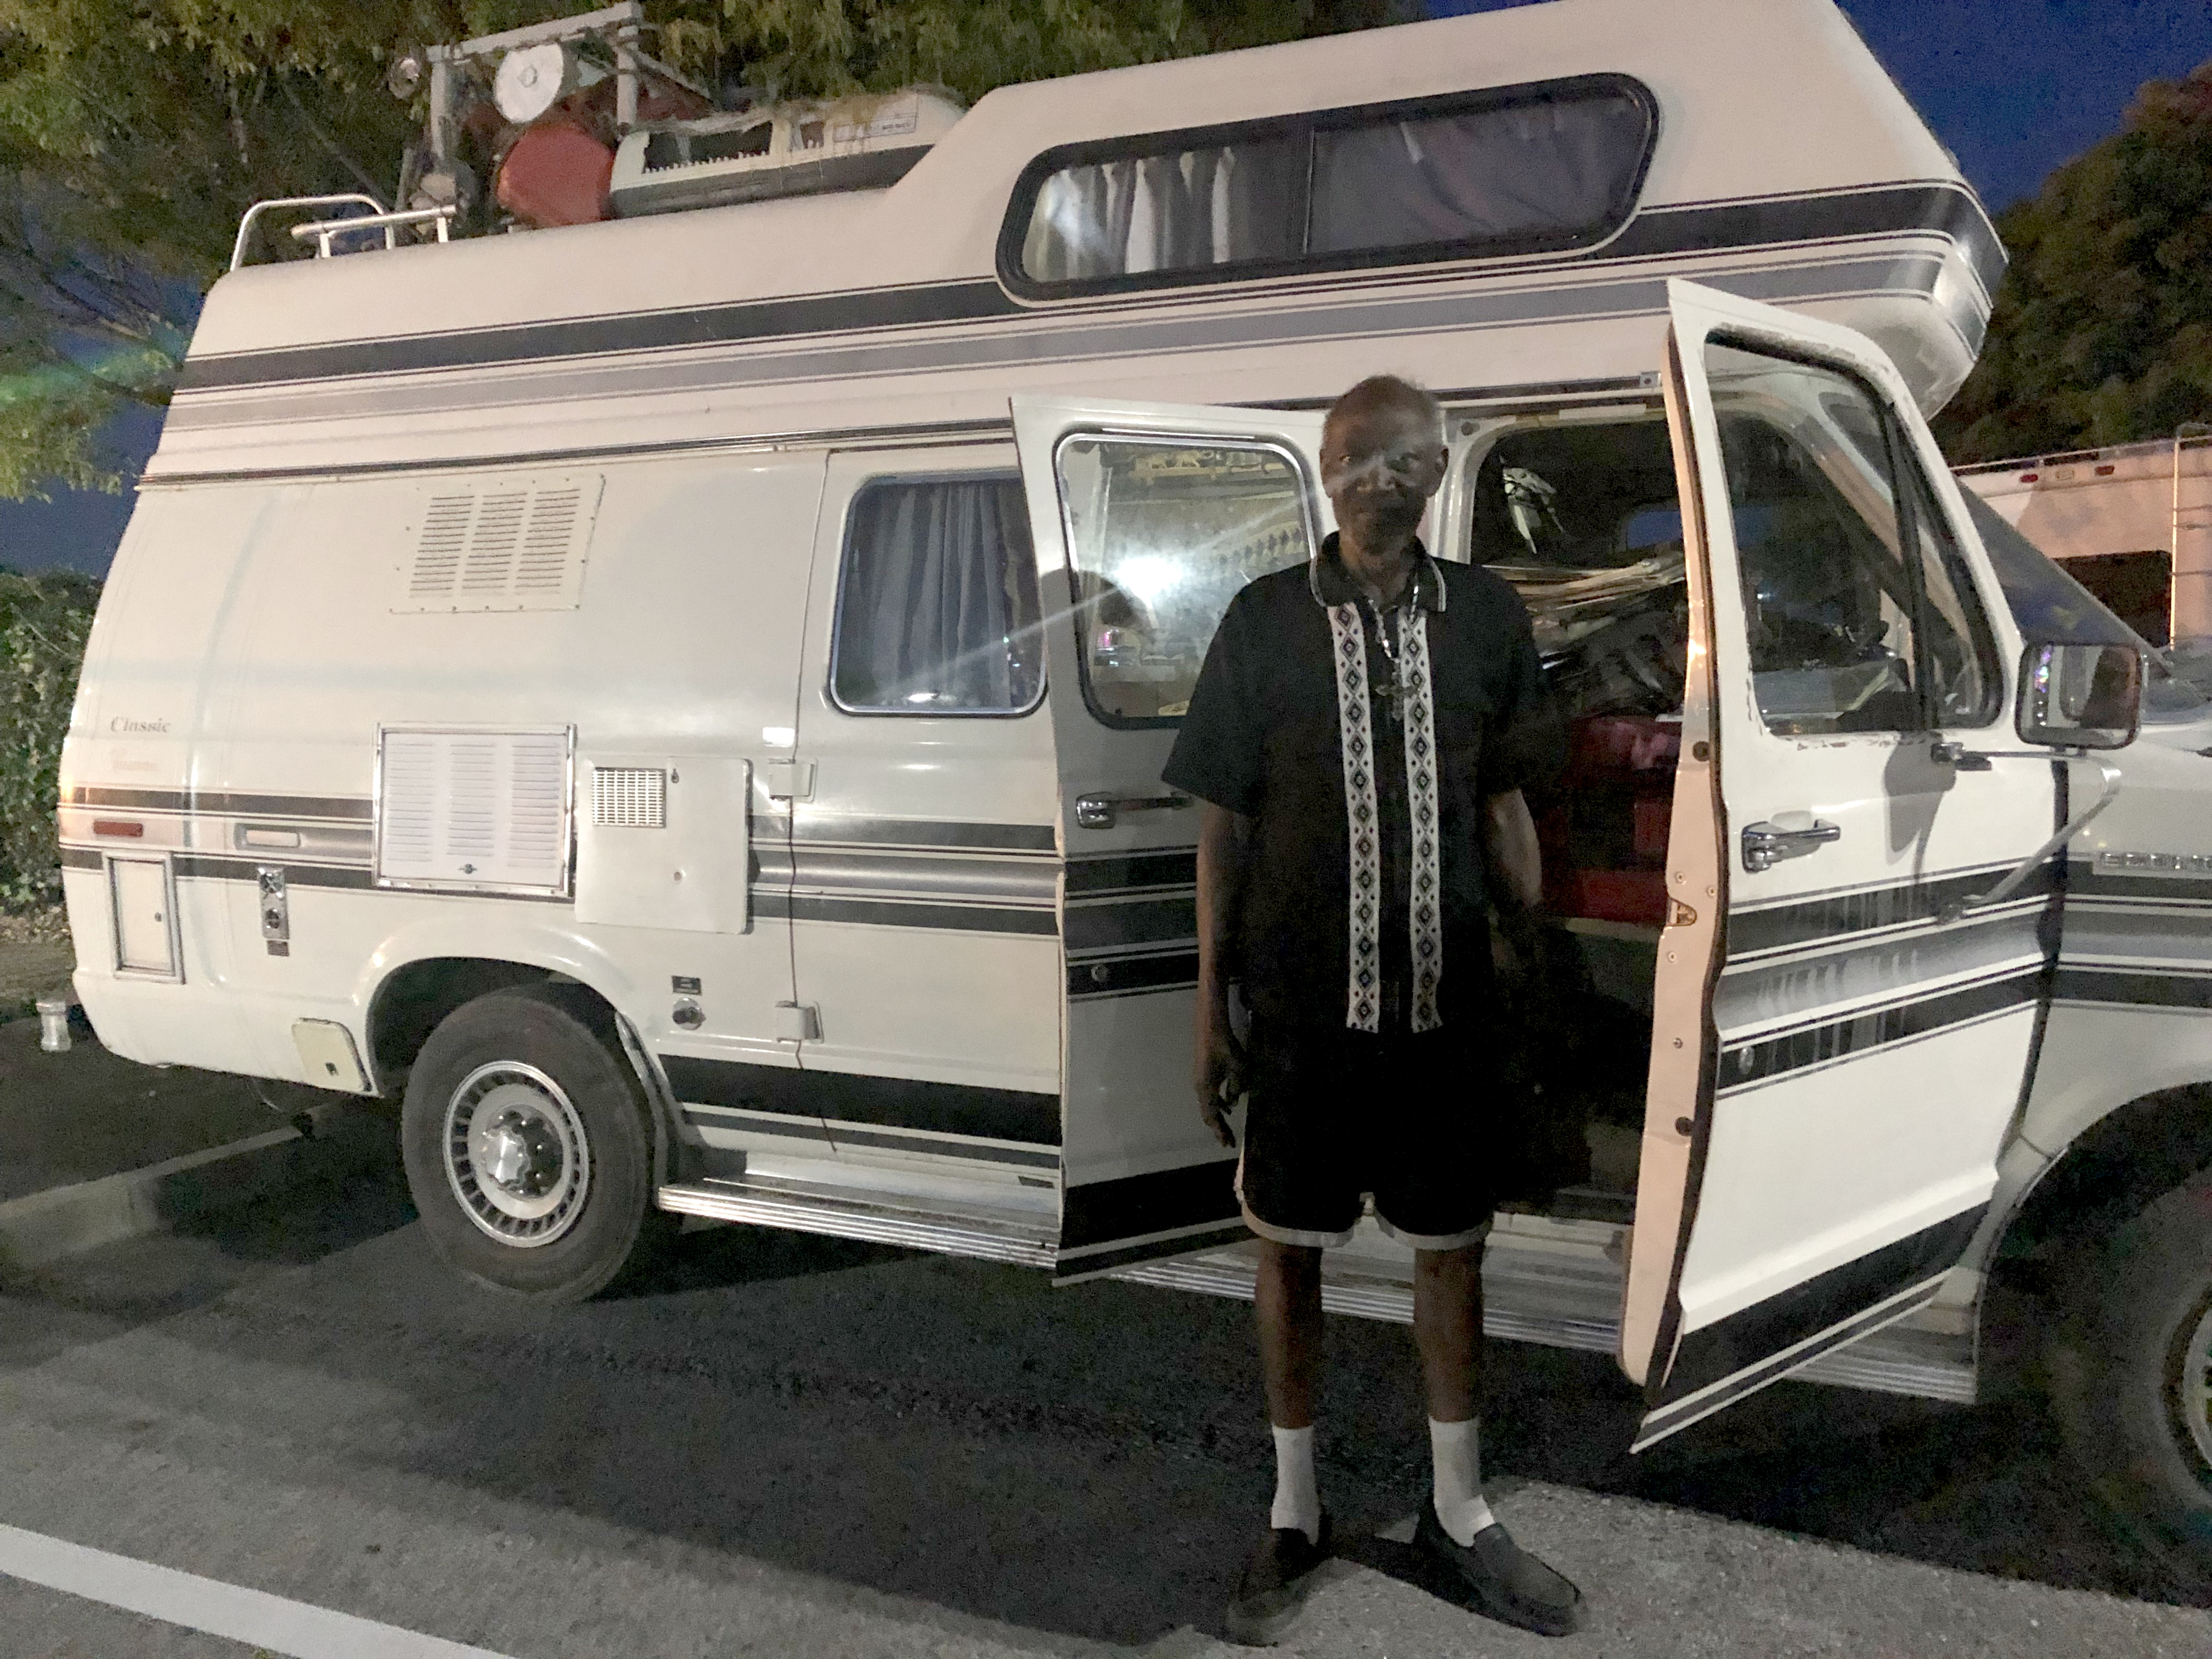 First Of Its Kind Program For People Living In Rvs Debuts In East Palo Alto News Palo Alto Online